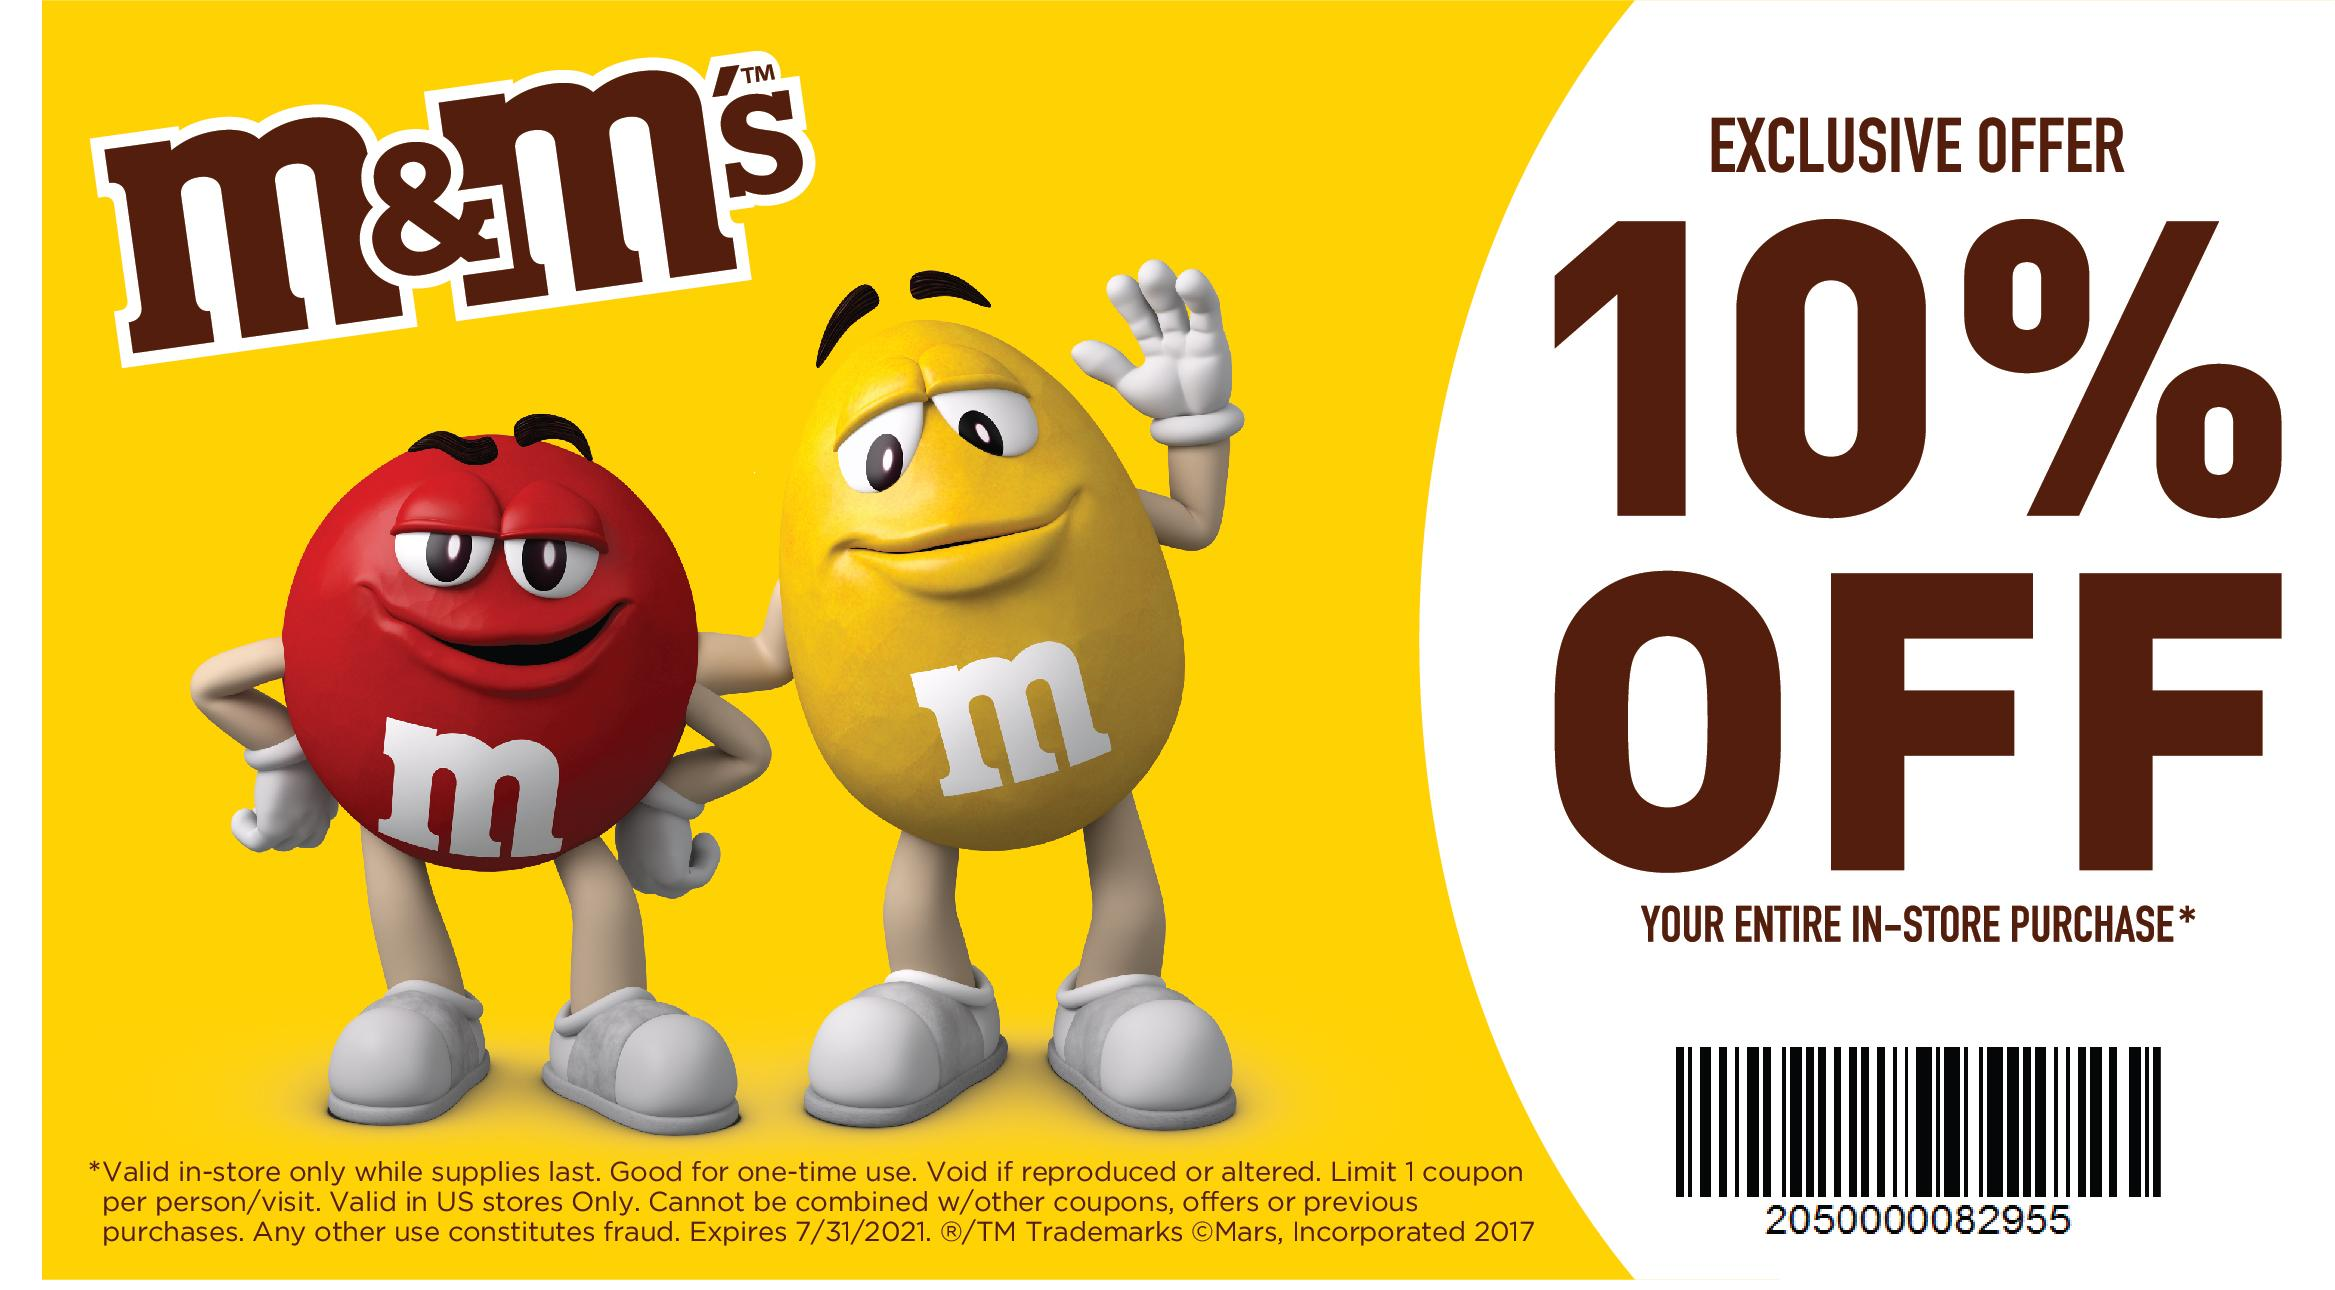 10% in-store coupon